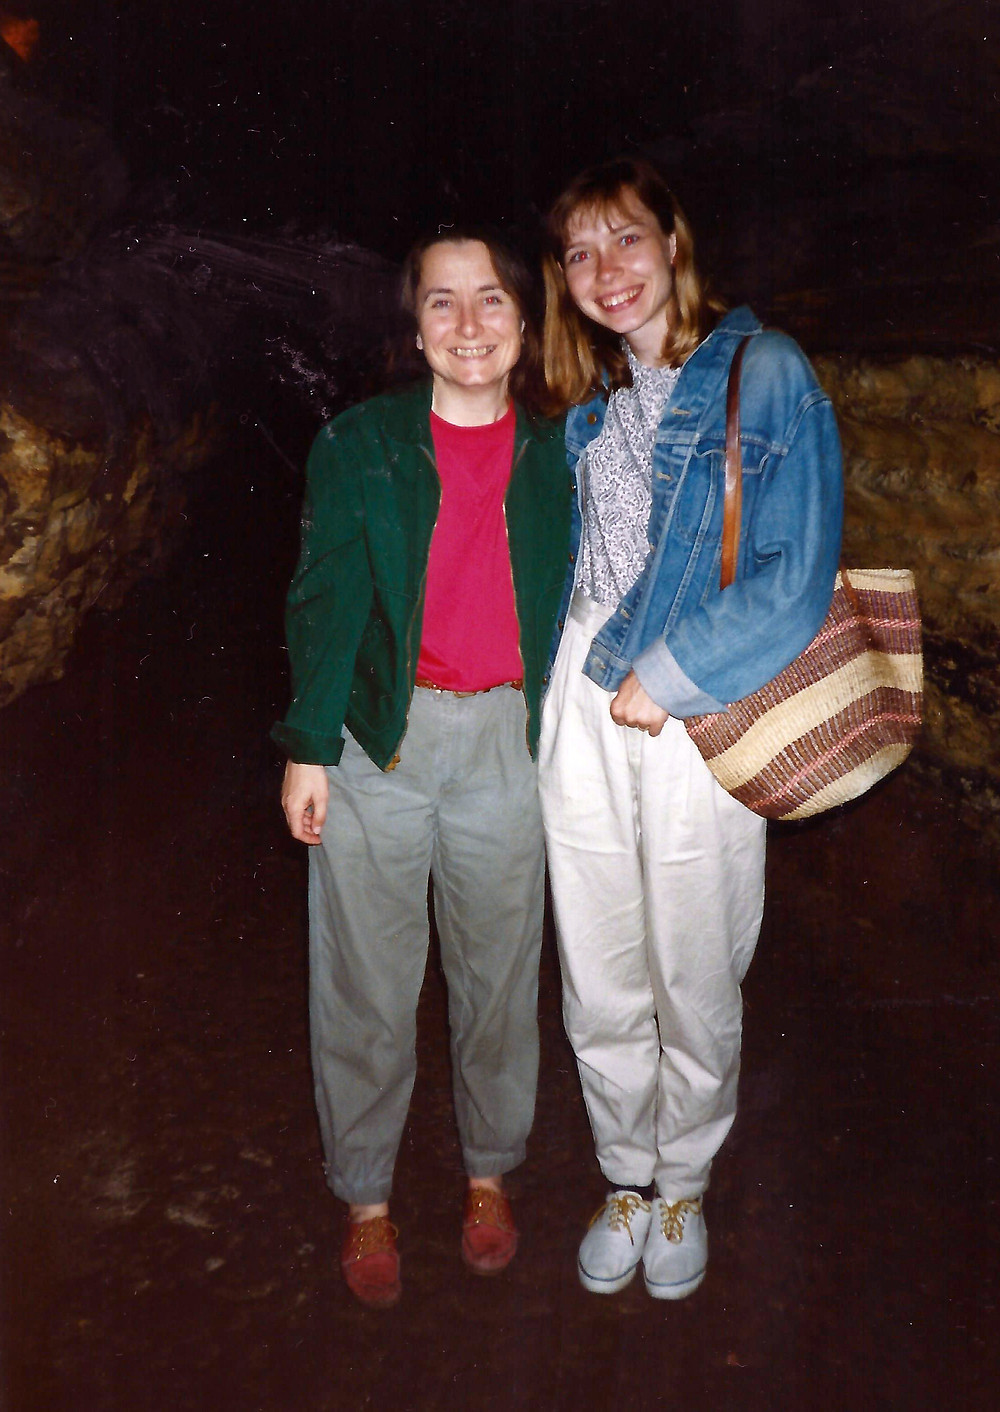 Beata and me in the cave, Hannibal, MO. She, her husband Jim and I took a road trip down from Iowa City and Read Tom Sawyer on the way down; she had never heard of the book.